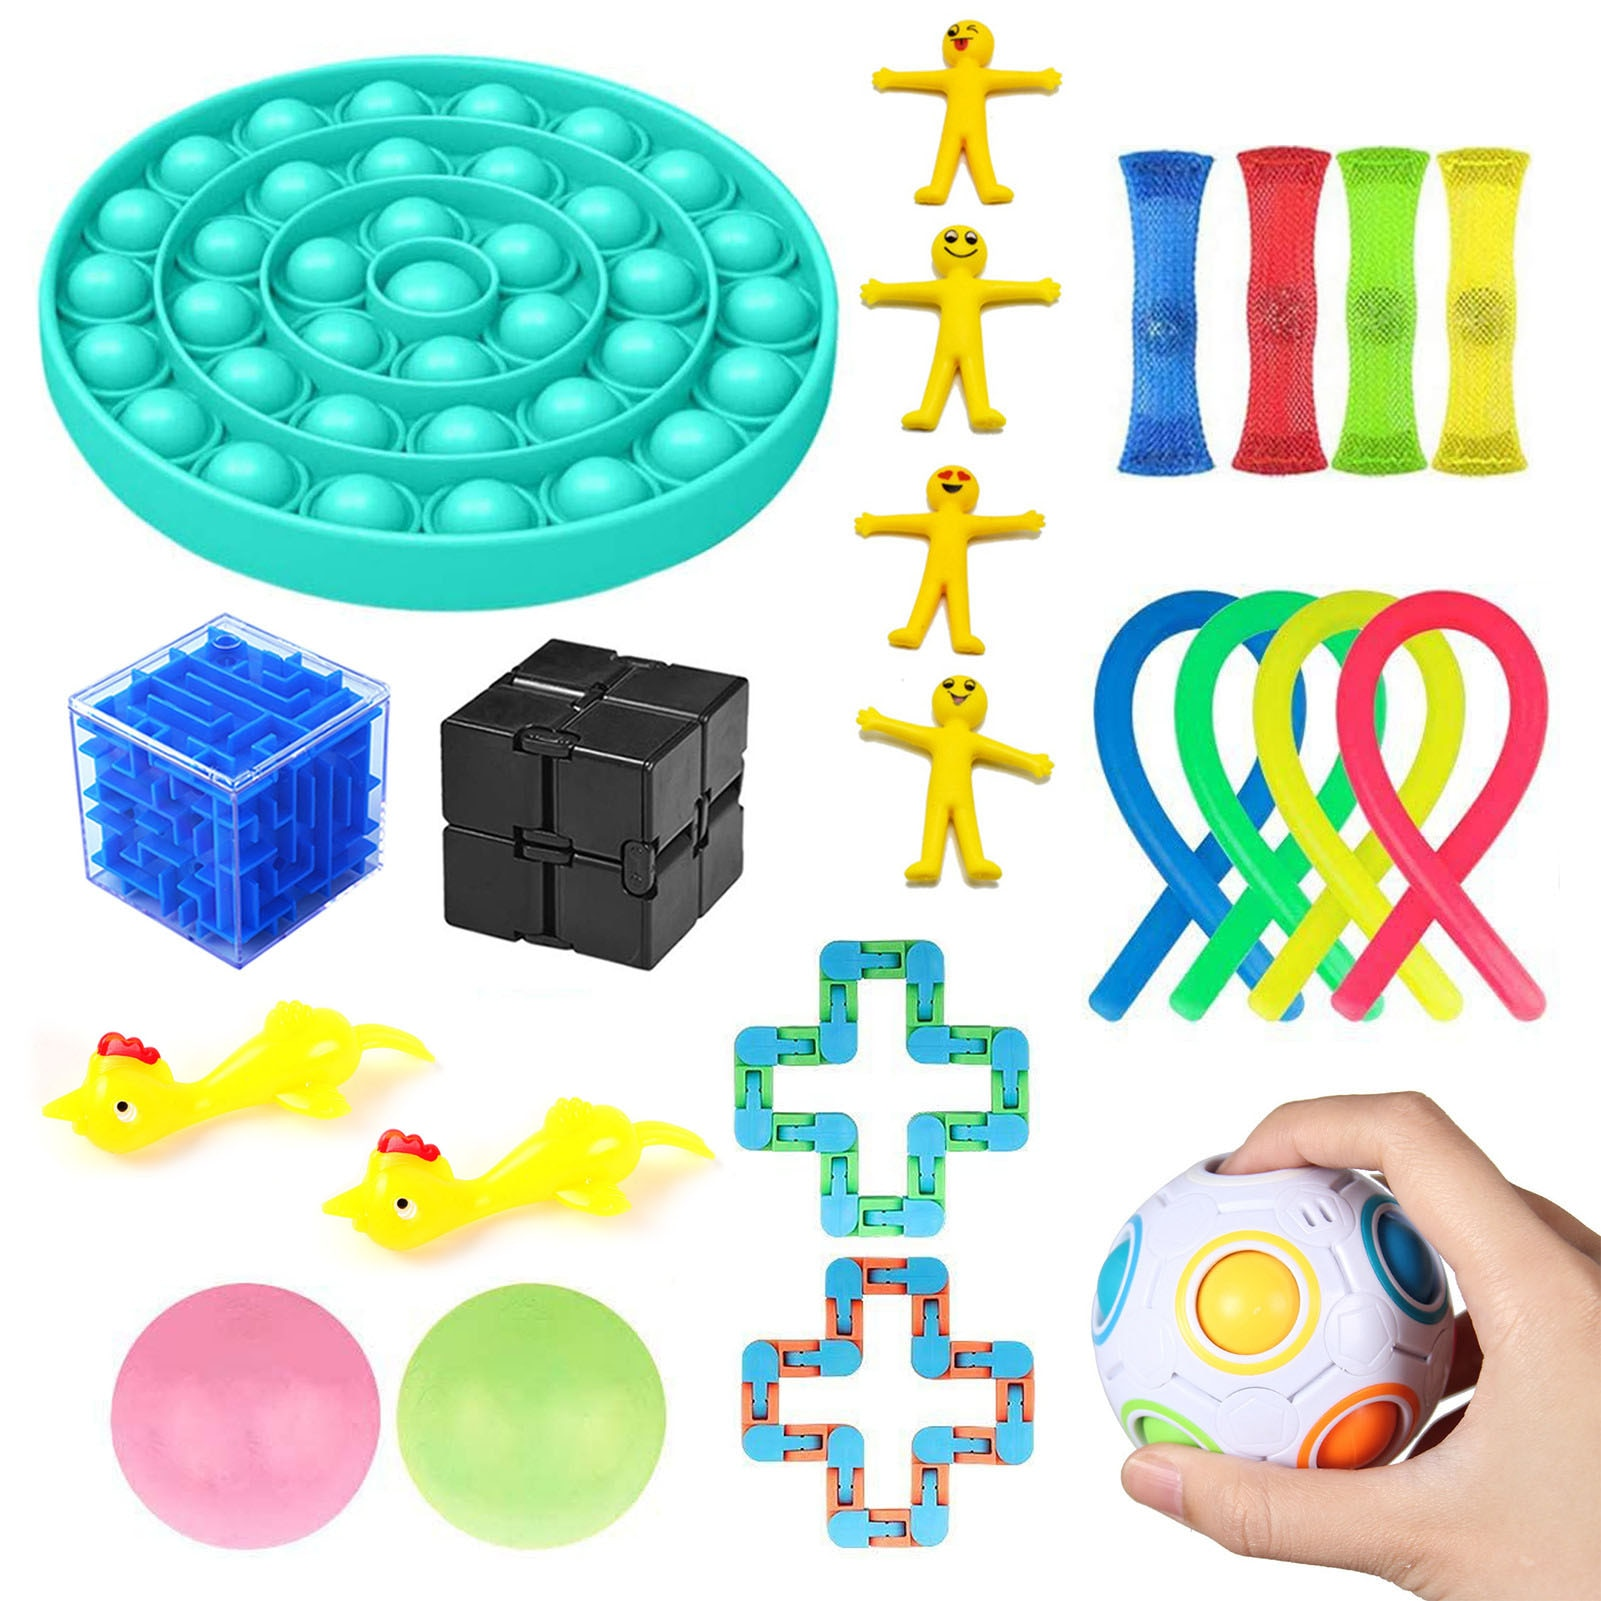 24 PackSensory Toy Set Stress Relief Toys Pressure Ball Noodle Rope For Kids Adults Autism Decompression Toy Puzzle Game enlarge